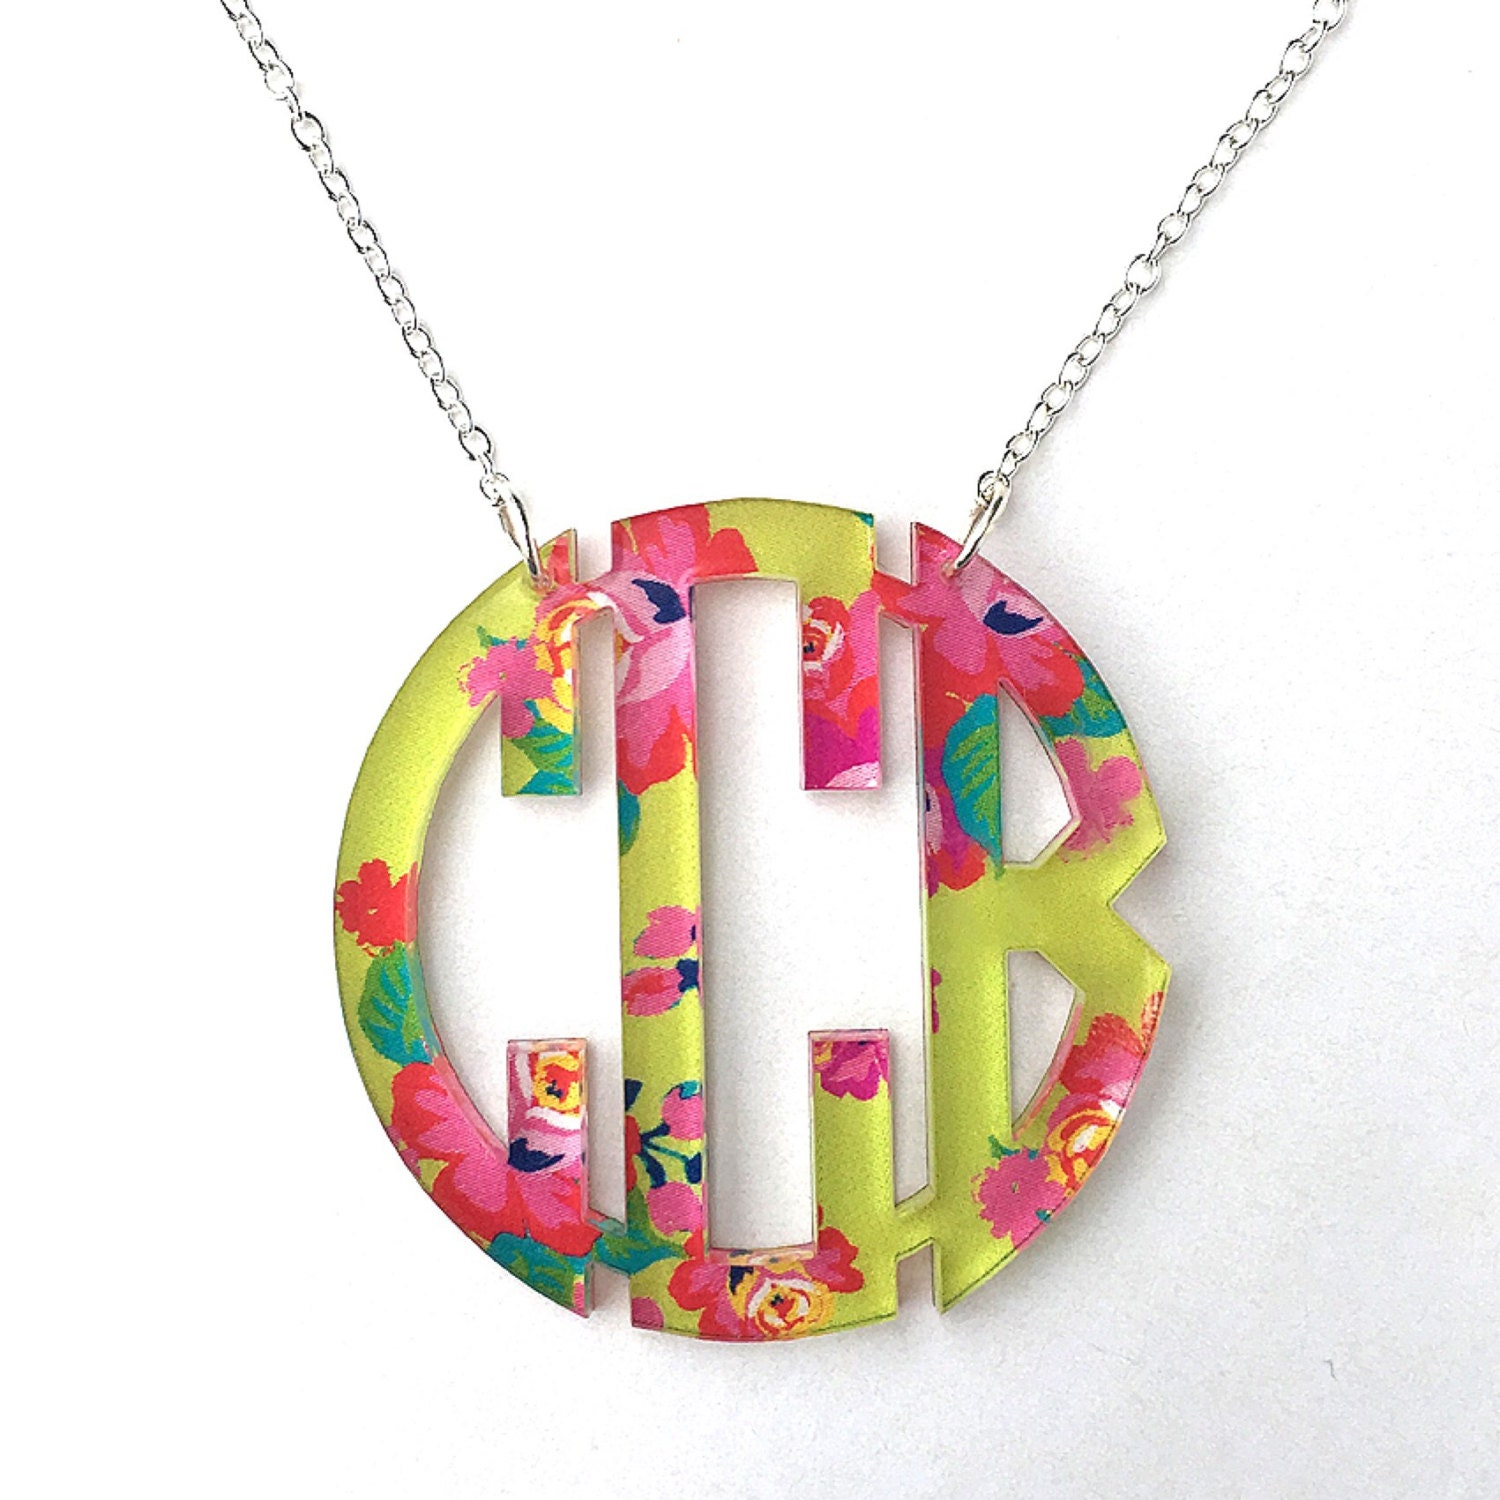 monogrammed necklace acrylic monogrammed necklace lilly